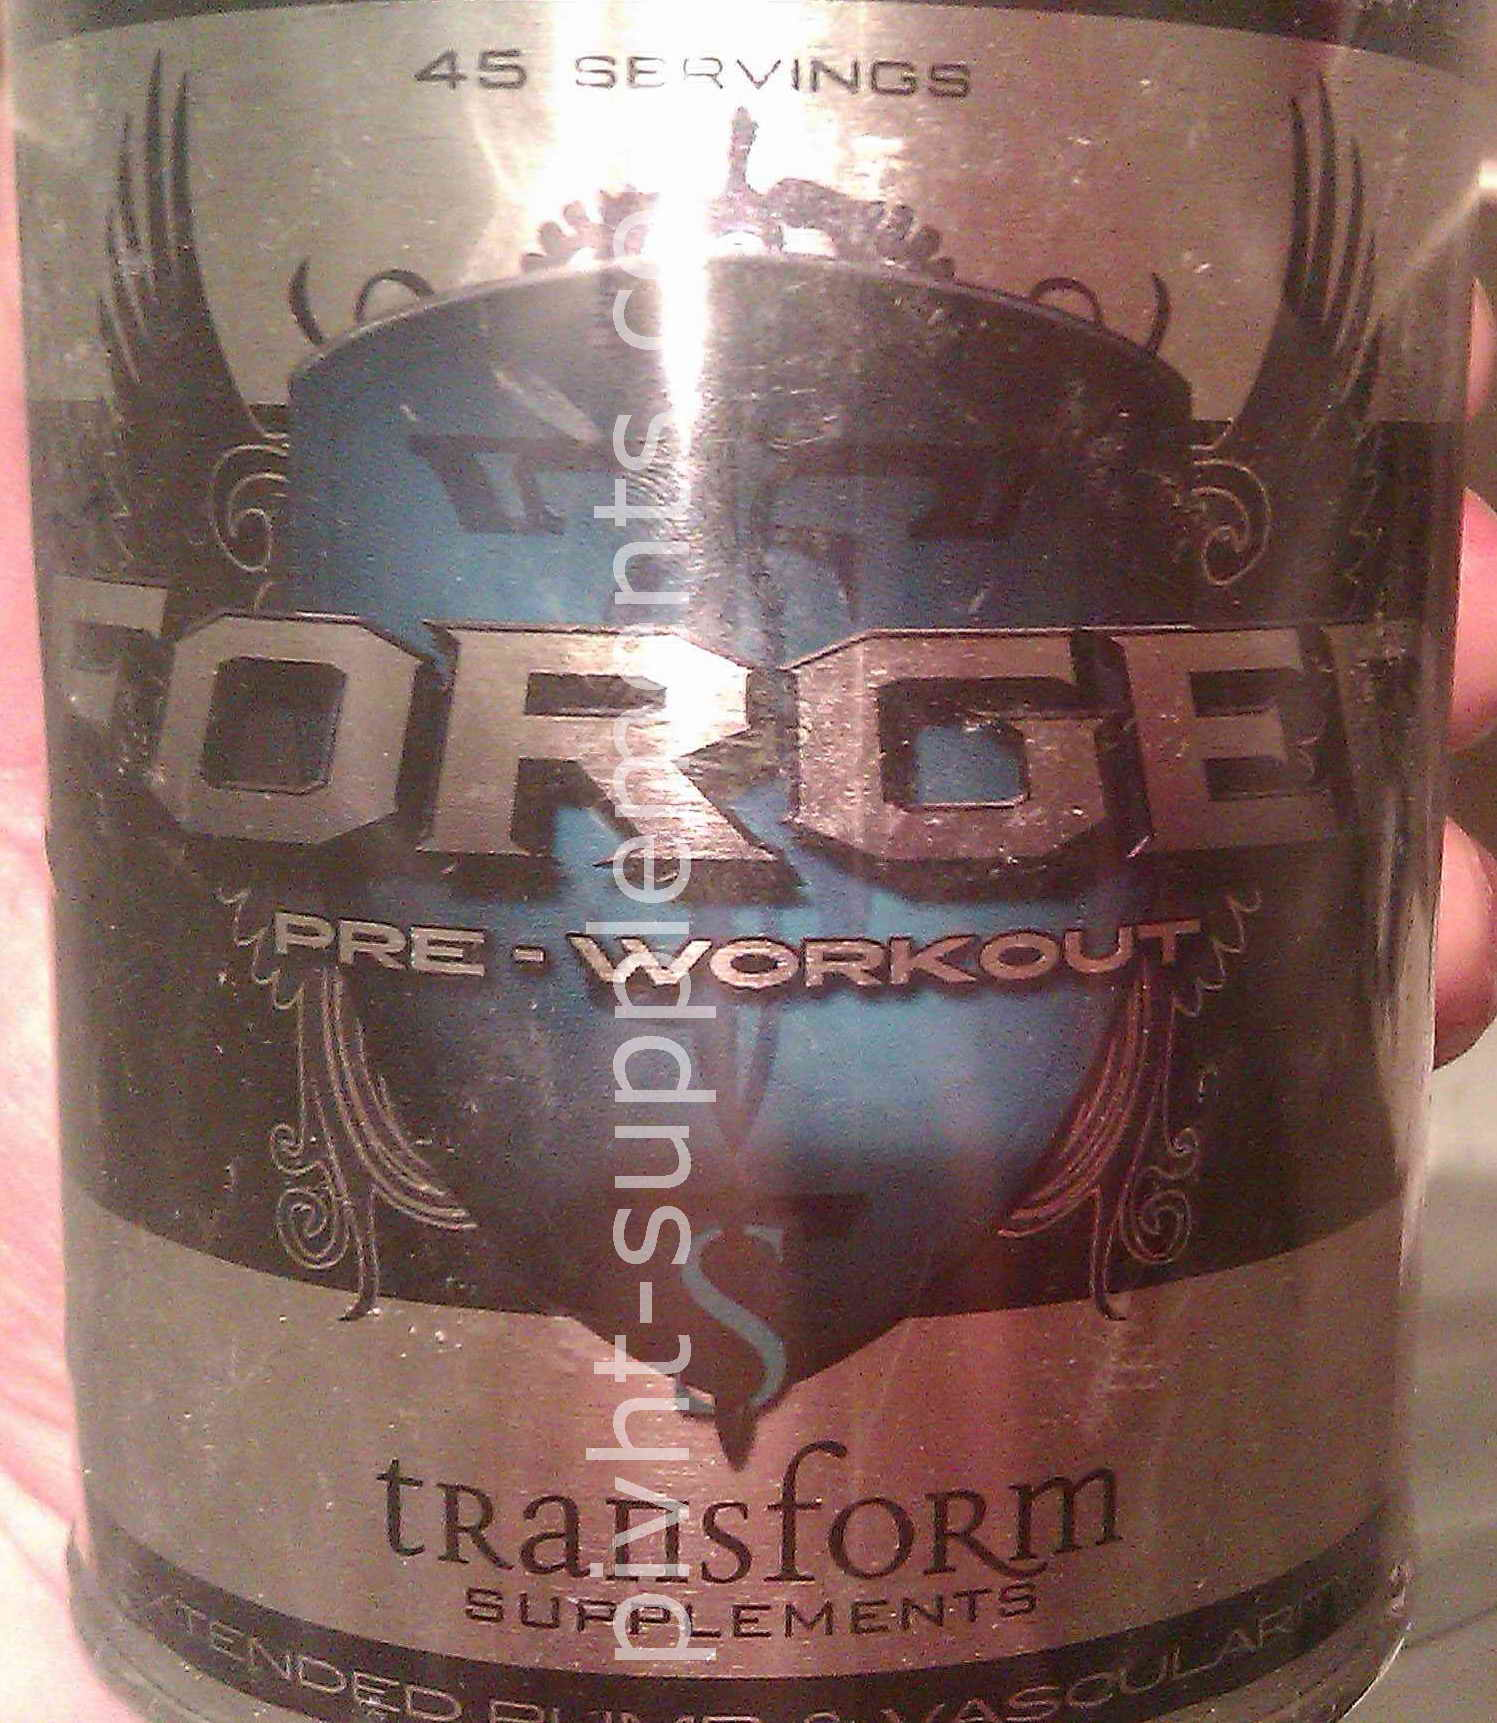 Transform Supplements - Forged Pre-Workout - 315g / 45 portions